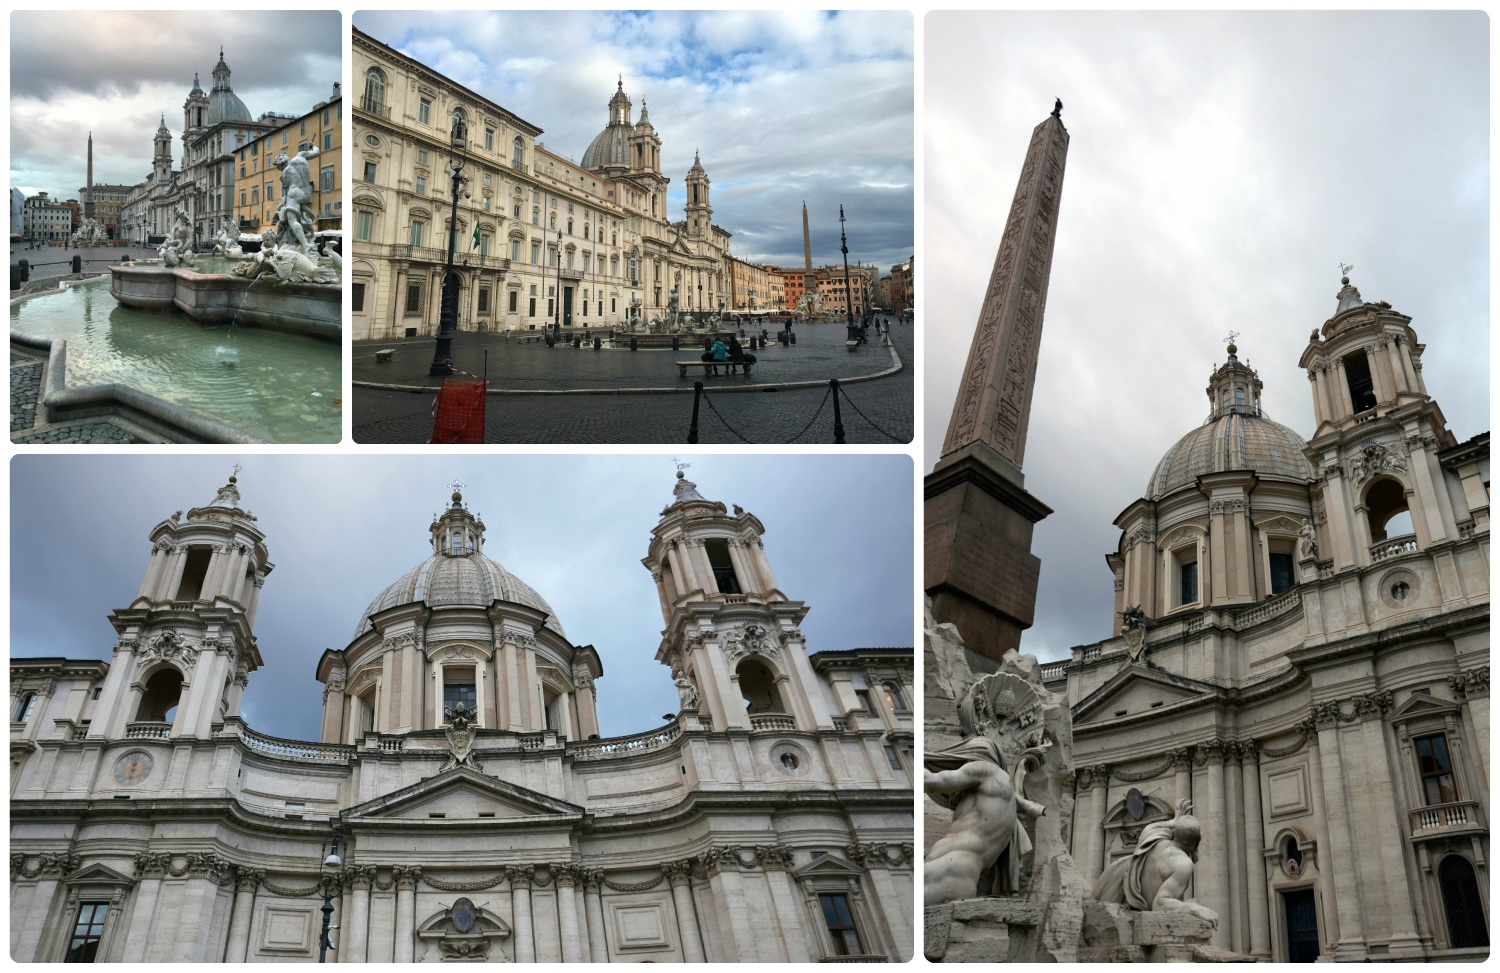 Piazza Navona and Saint Agnese in Rome, Italy.